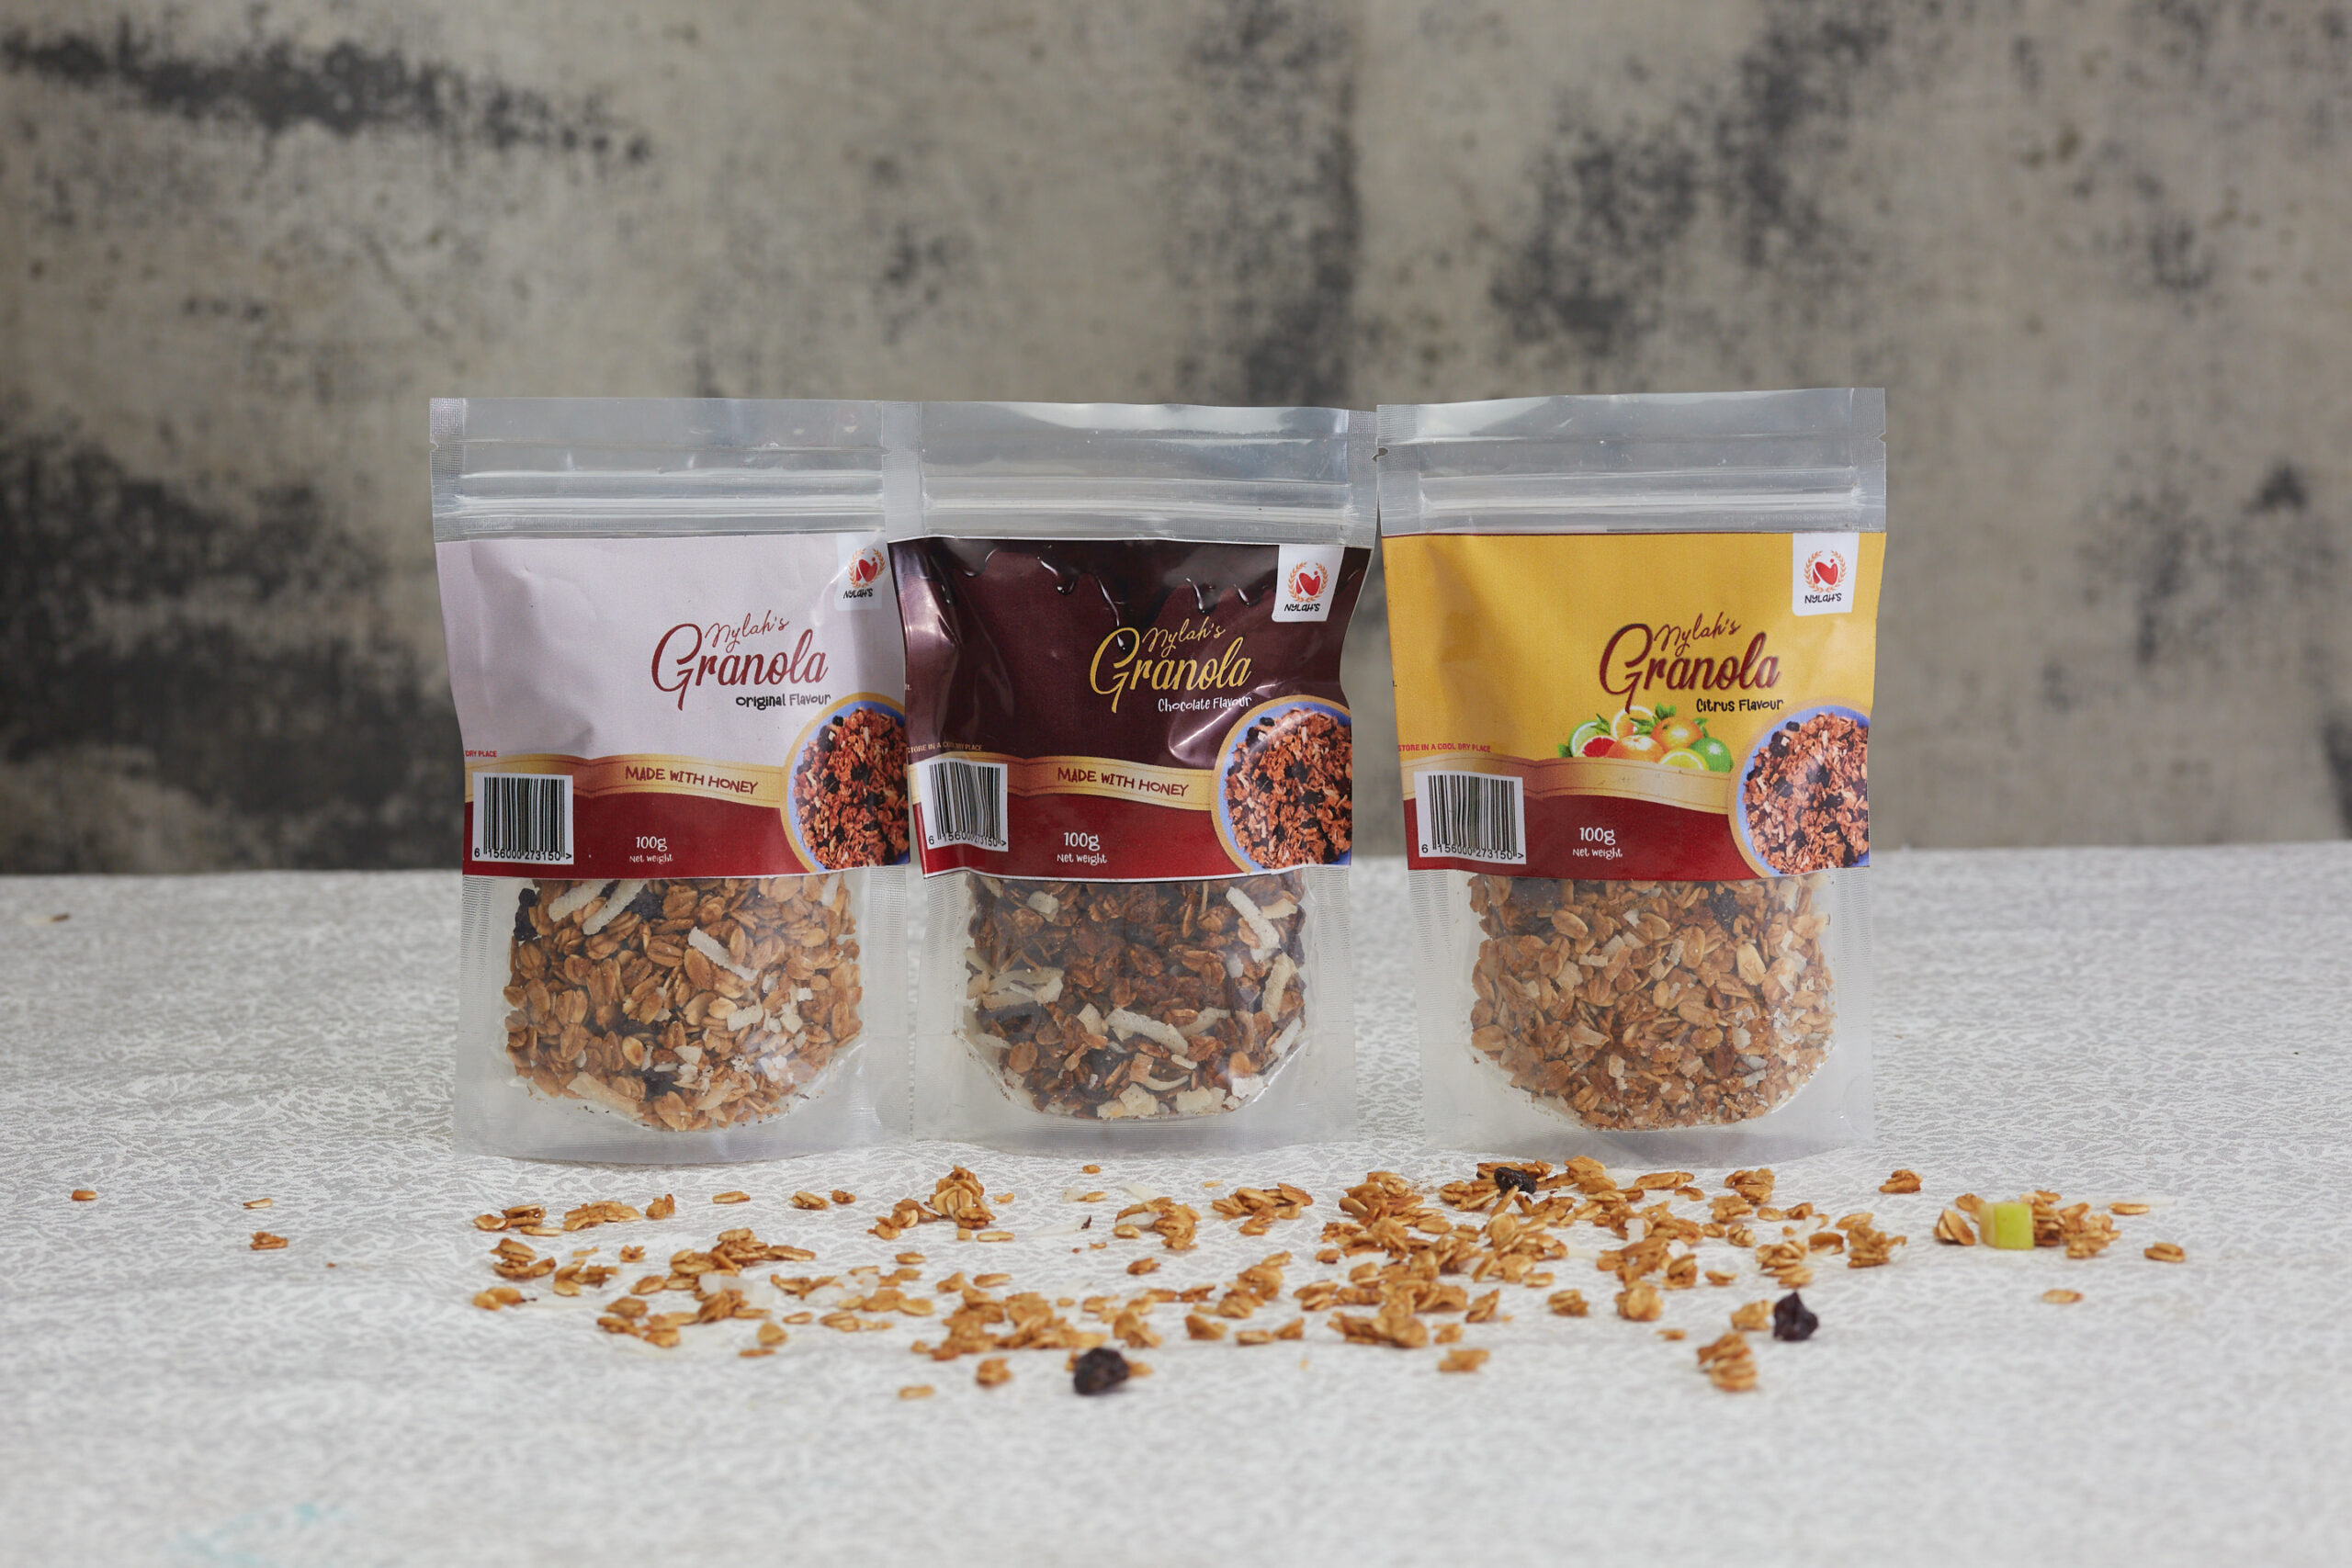 granola 3 flavours in nylon bag packaging - nylahs